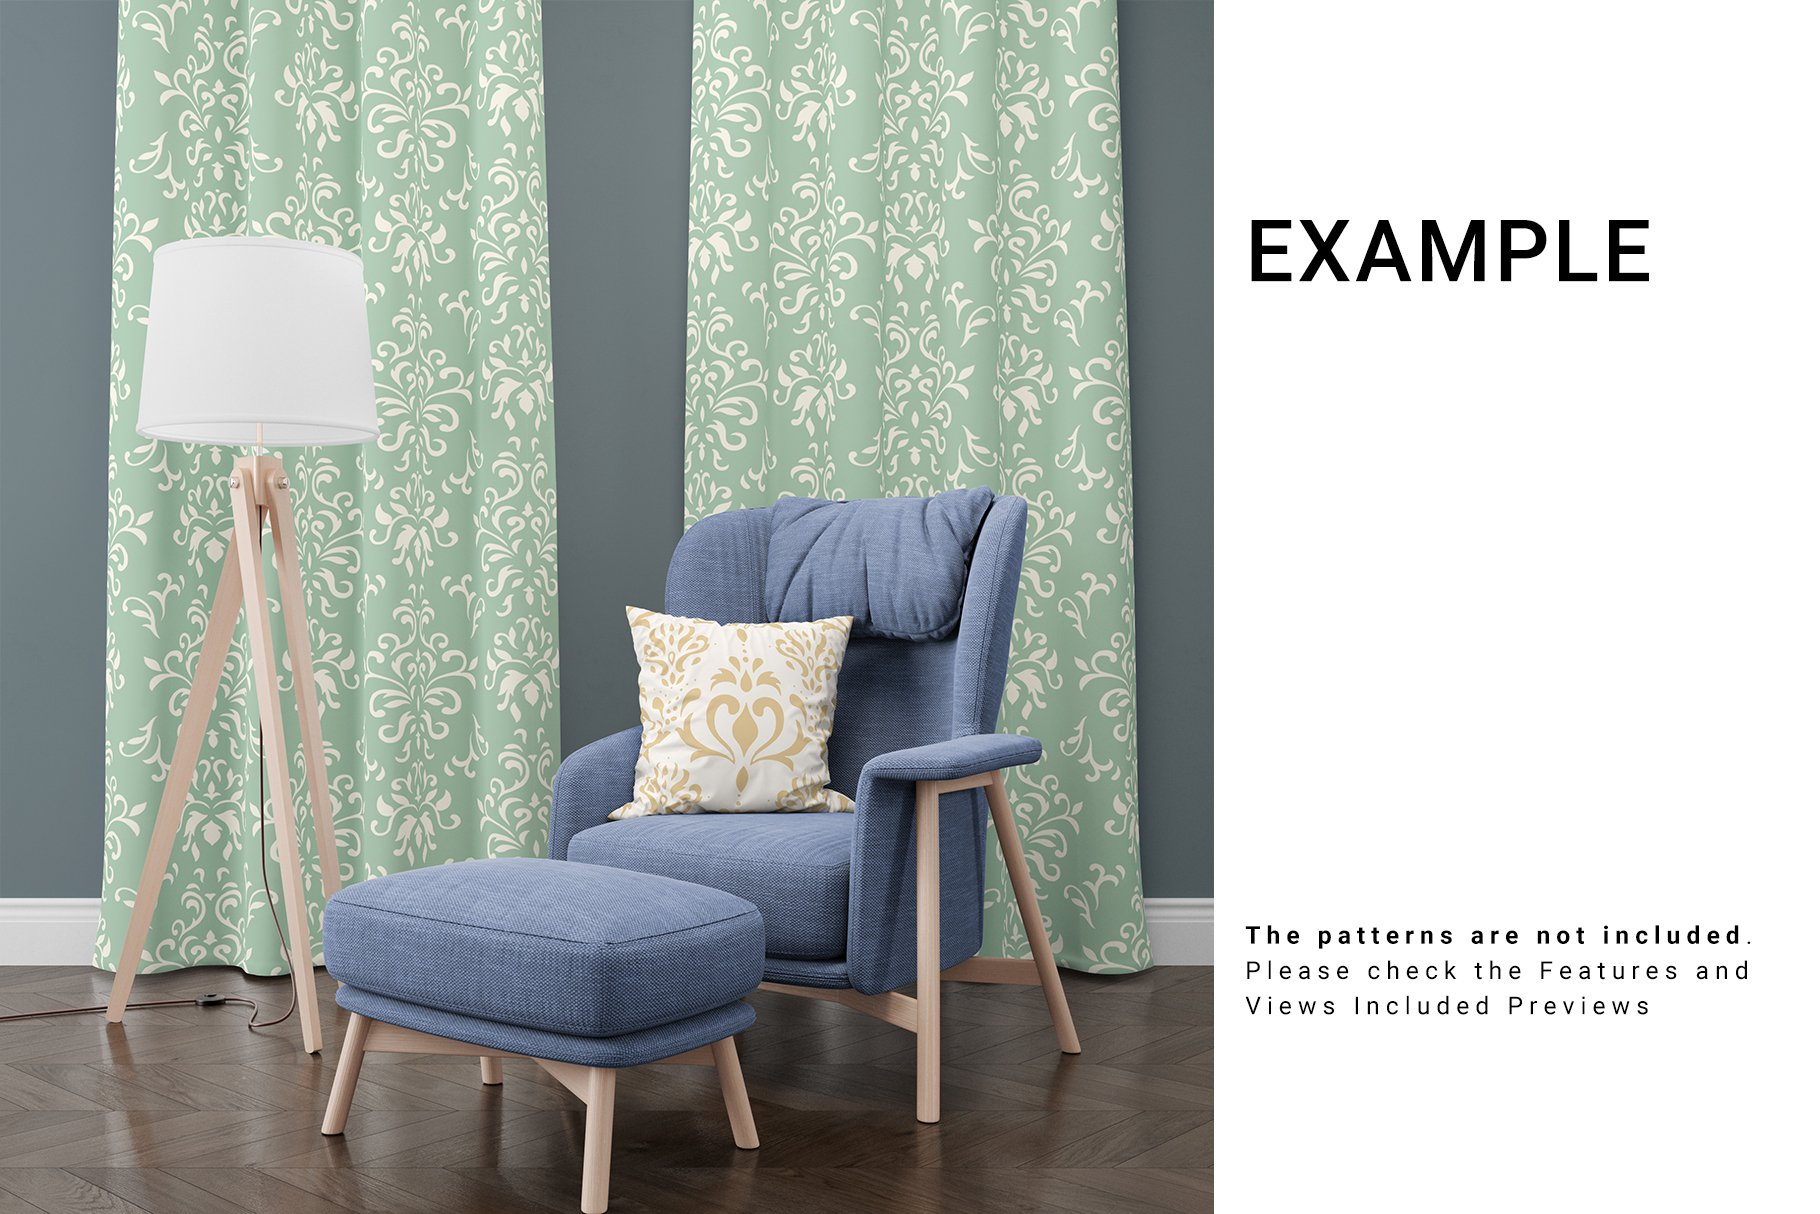 Curtains and Pillow Set example image 3